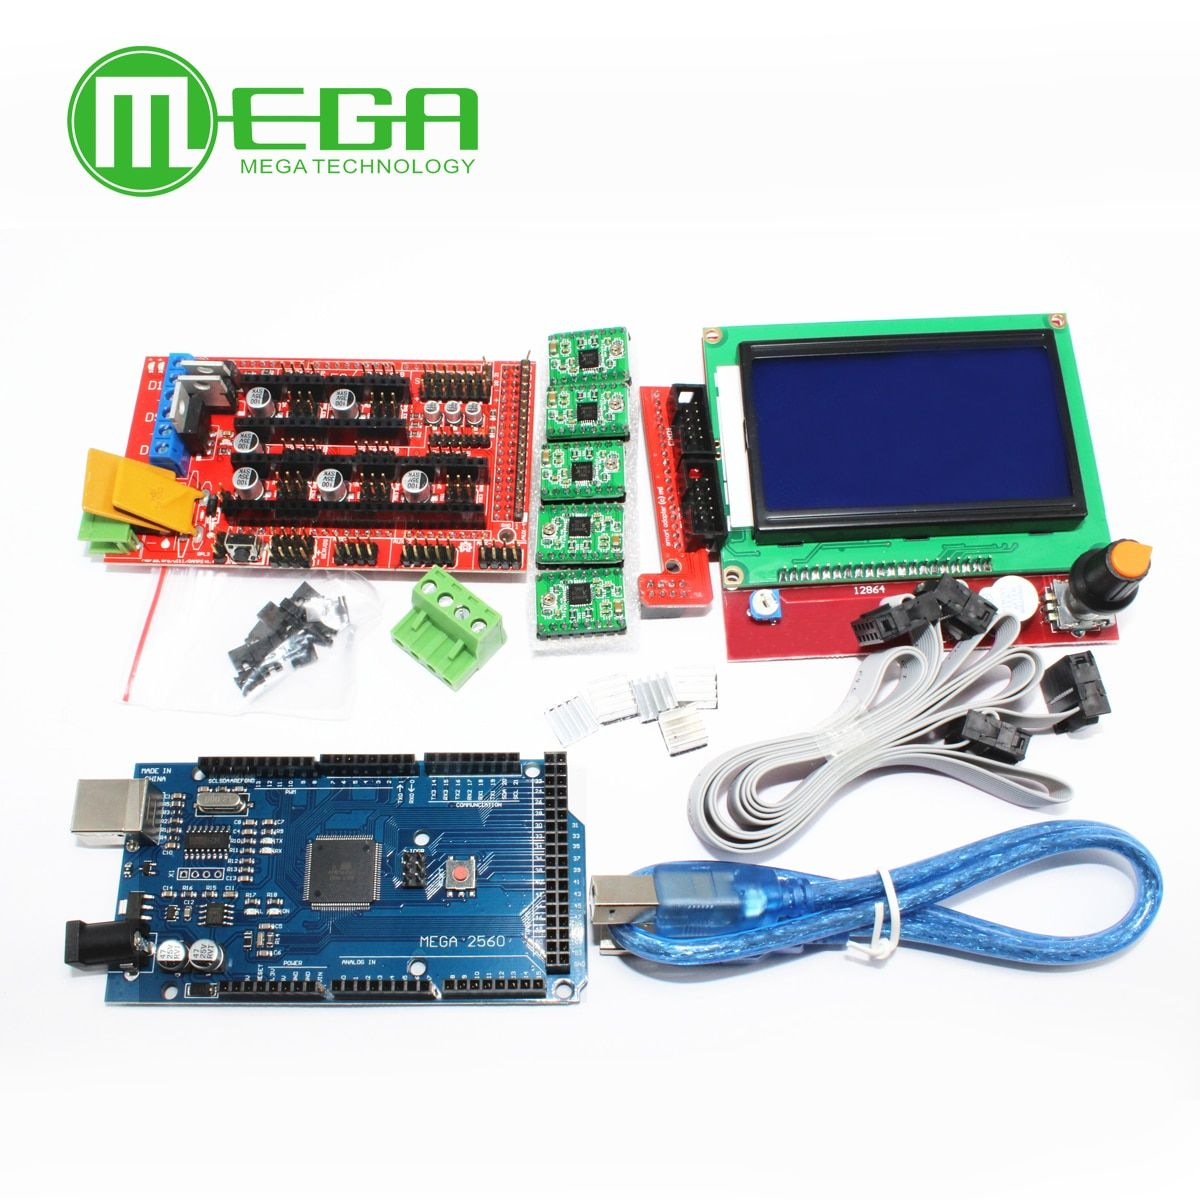 1pcs Mega 2560 R3 CH340 + 1pcs RAMPS 1.4 Controller + 5pcs A4988 Stepper Driver Module +1pcs 12864 controller for 3D Printer kit